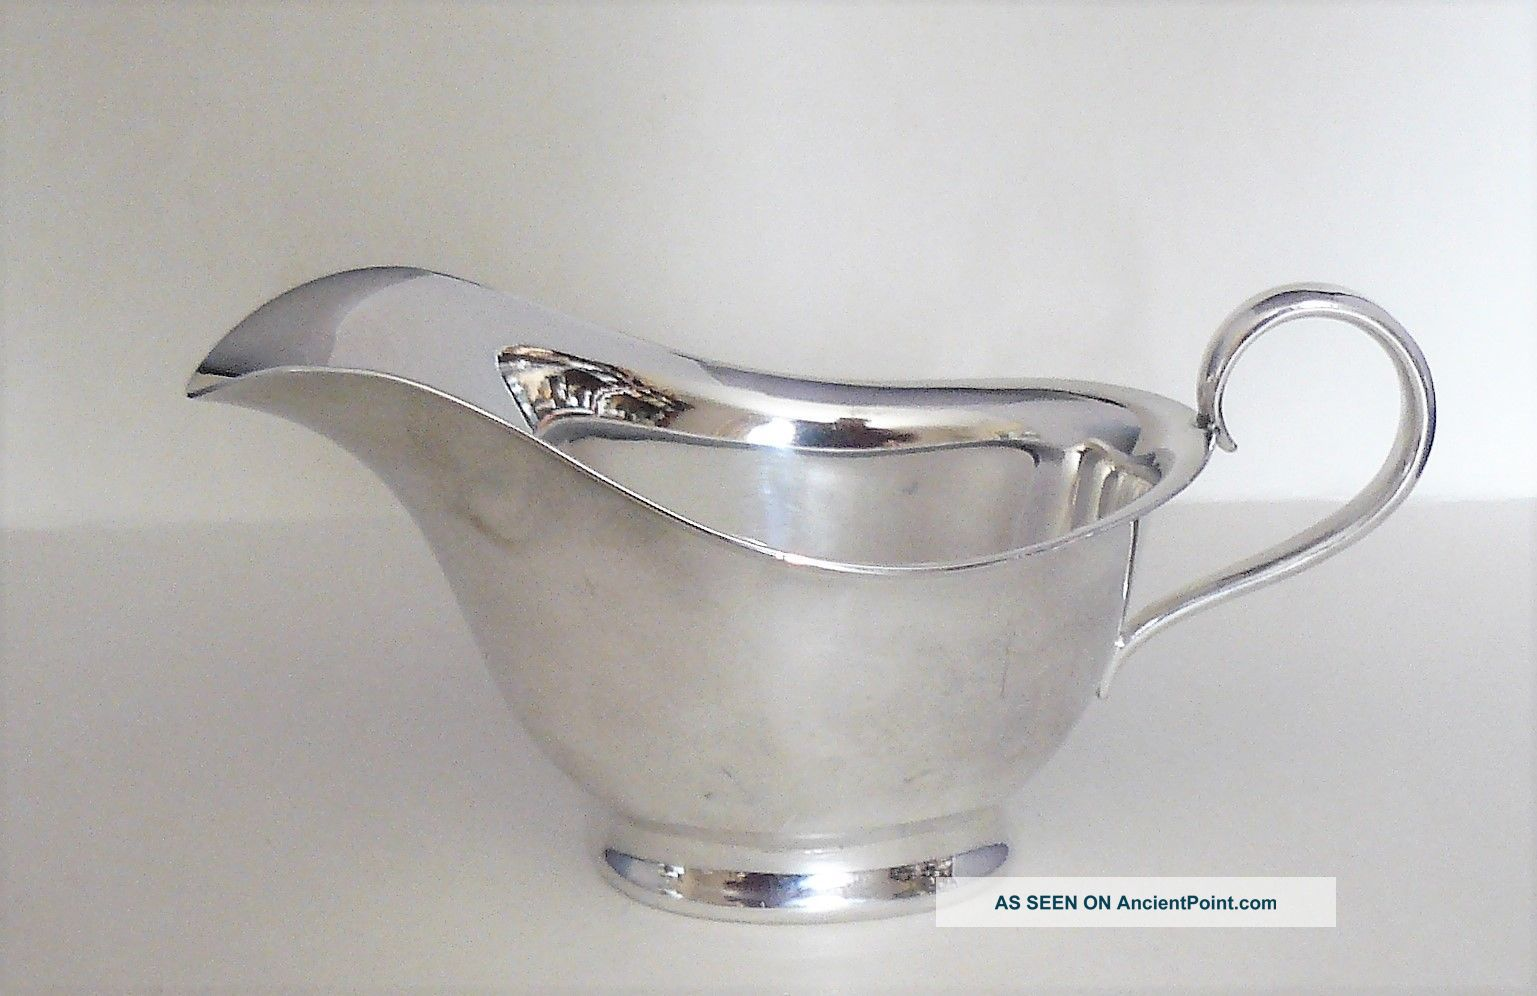 Vintage Atkins Brothers - Silver Plated - Small Sauce Boat - Model 5305 - Vgc Sauce Boats photo